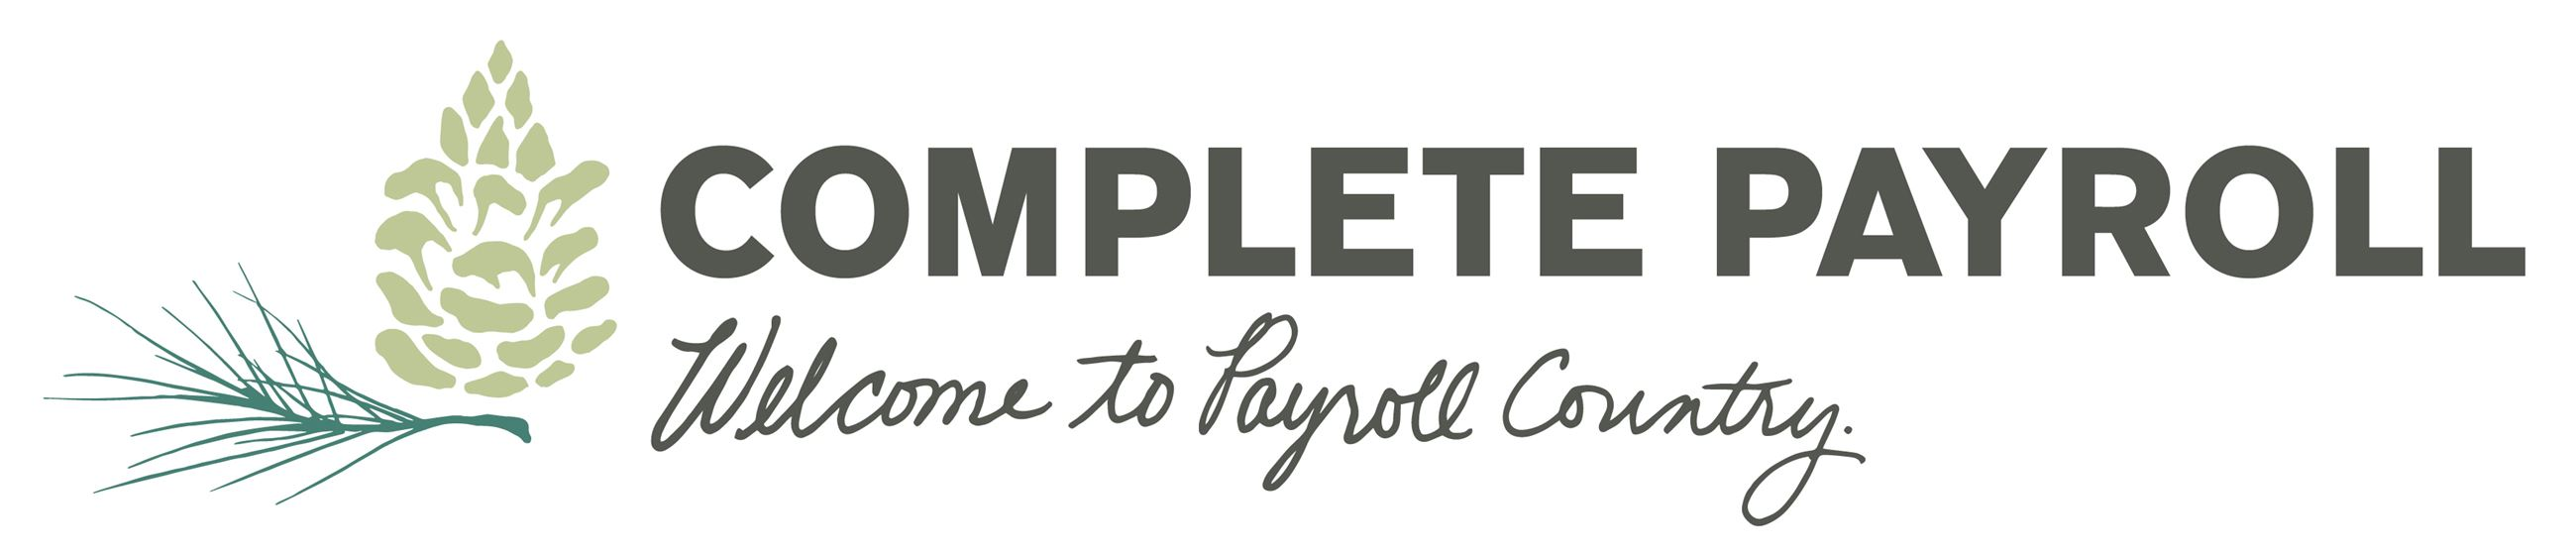 Complete Payroll Logo